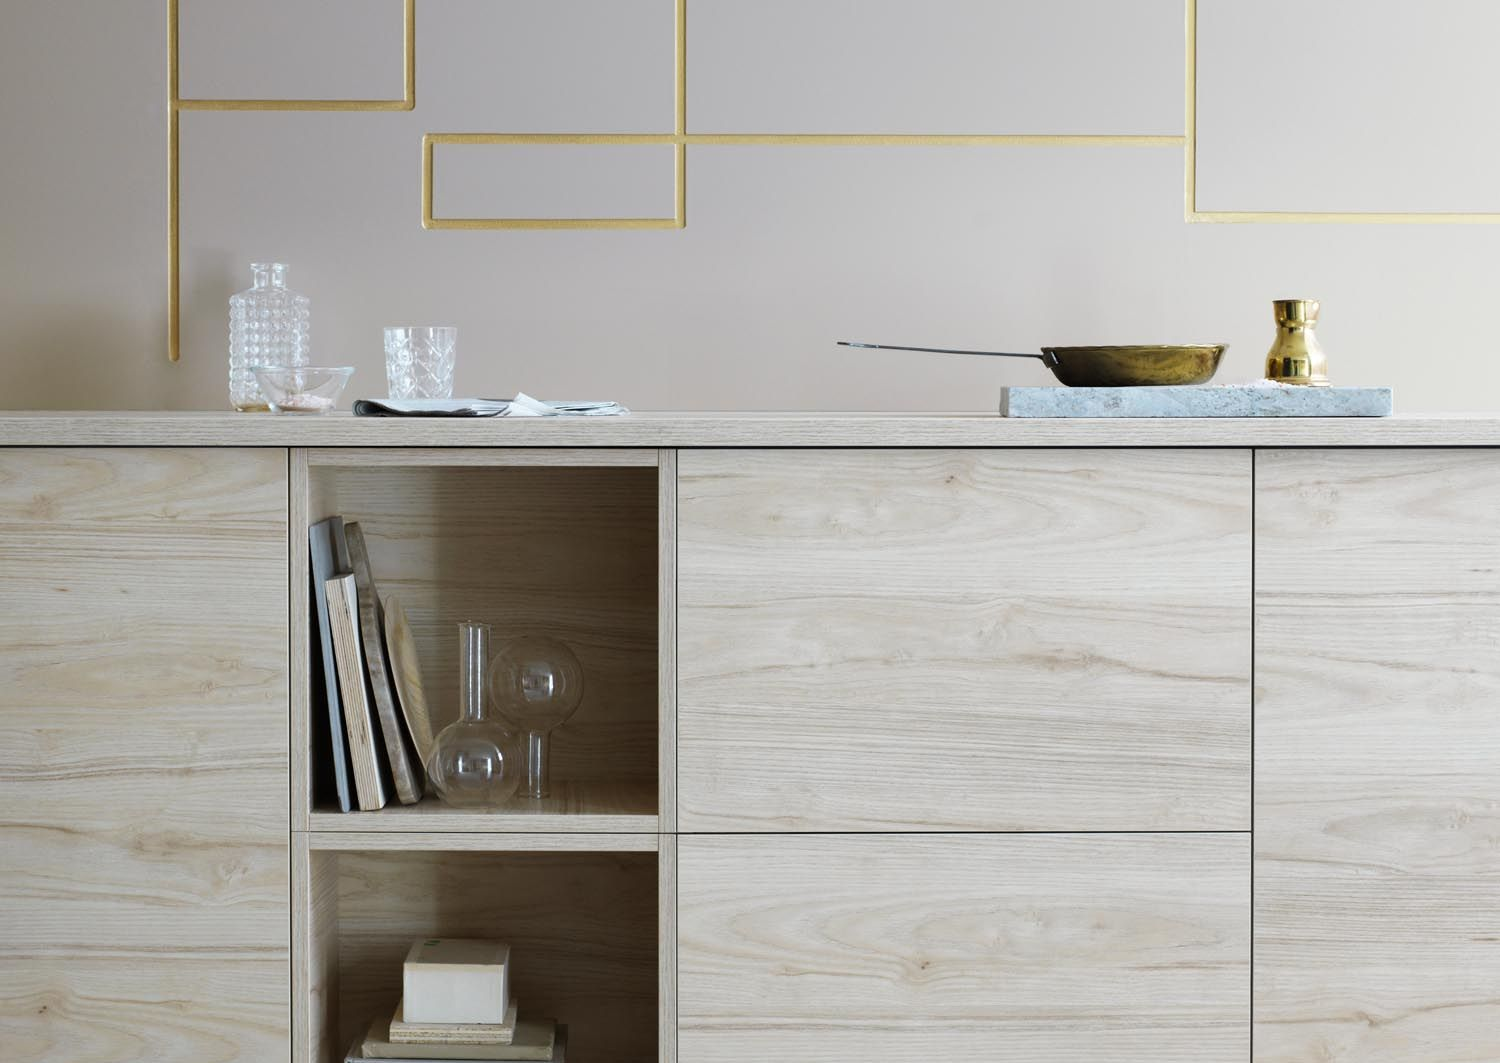 Askersund Bleached Wood Kitchen Cabinets Ikea S New Collections For 2017 Rue Kitchen Style Ikea Kitchen Ikea Kitchen Cabinets